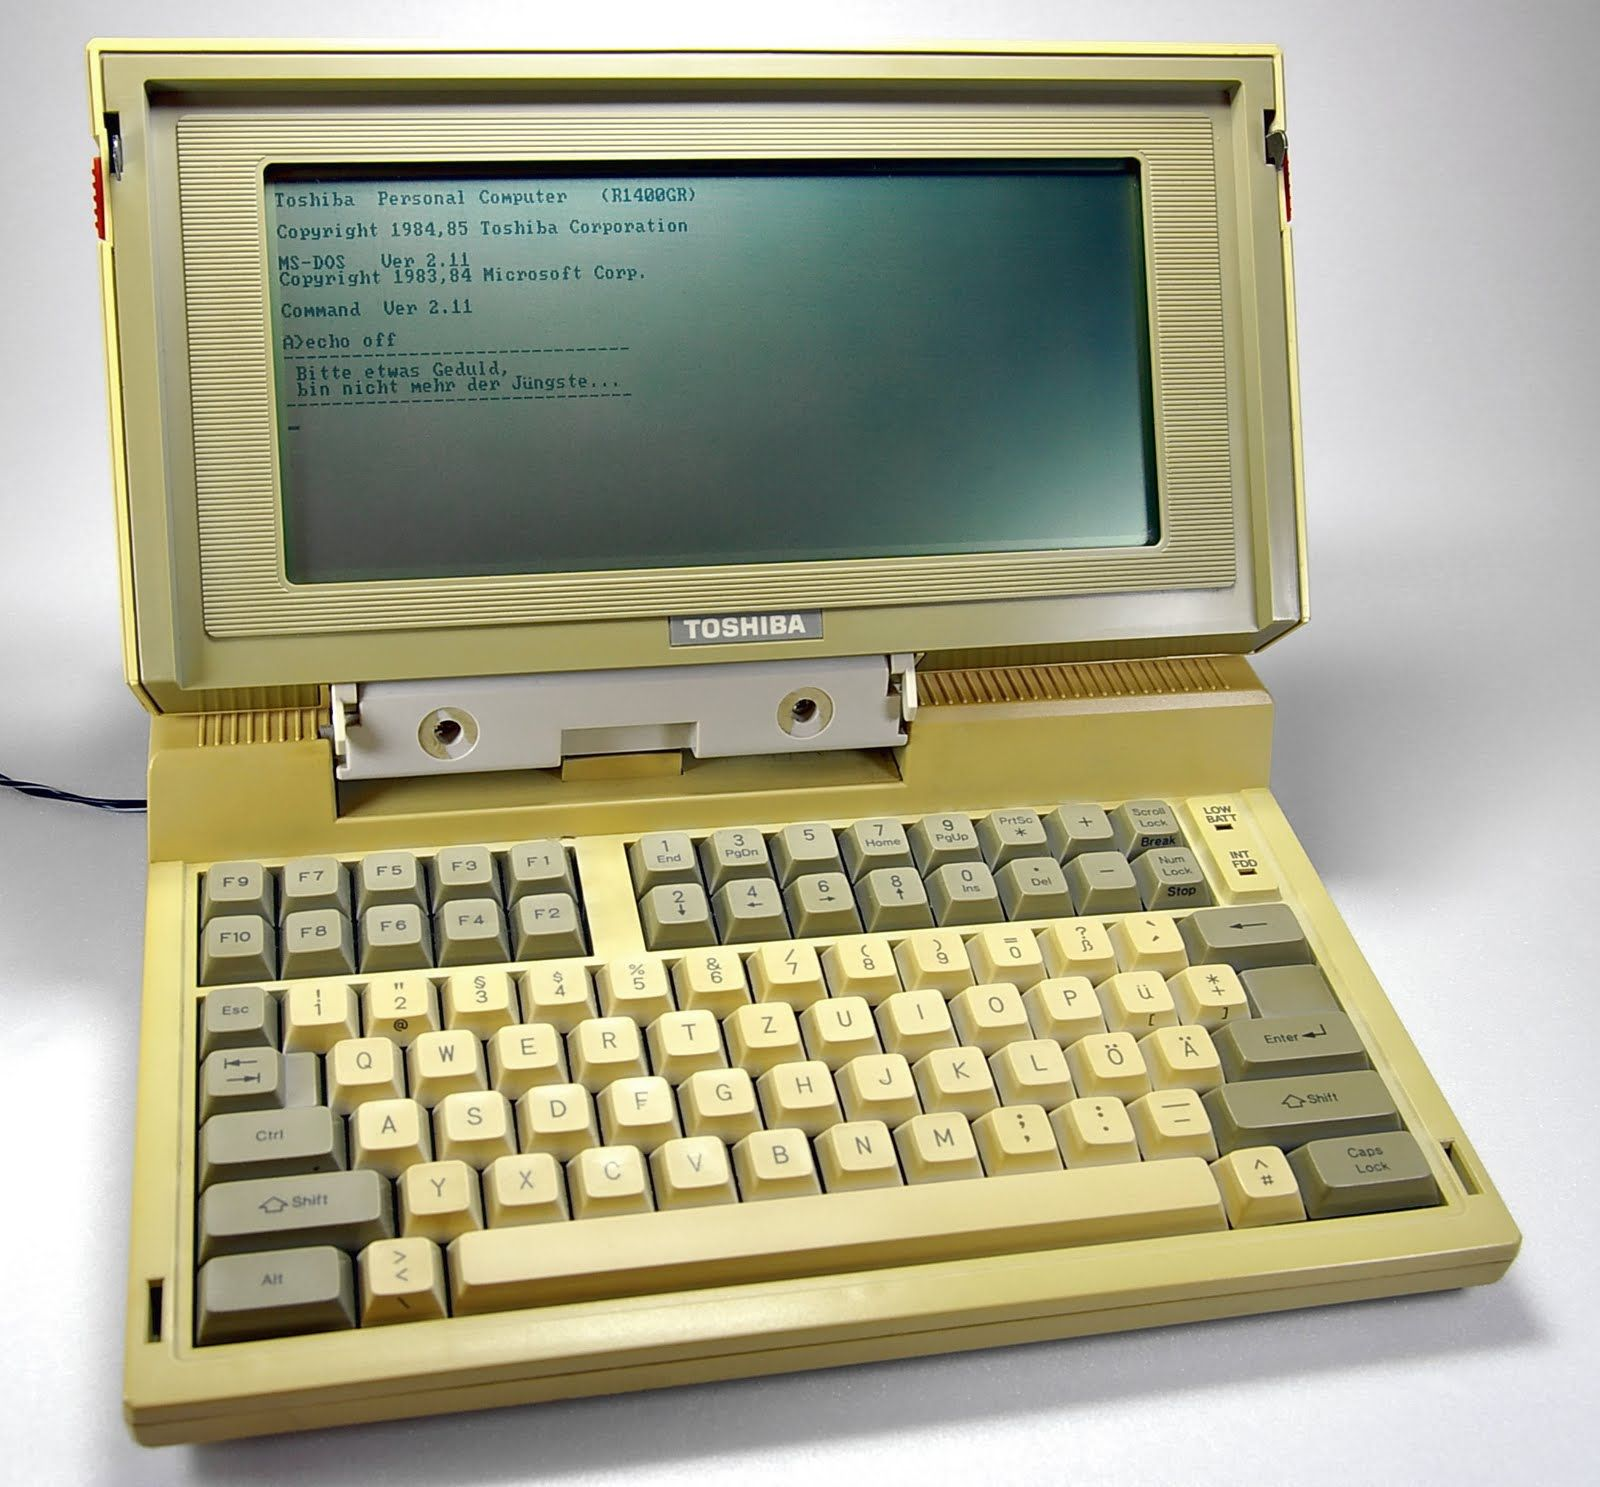 World S First Laptop 25 Years Old And Still Running Toshiba Laptop Toshiba Old Computers